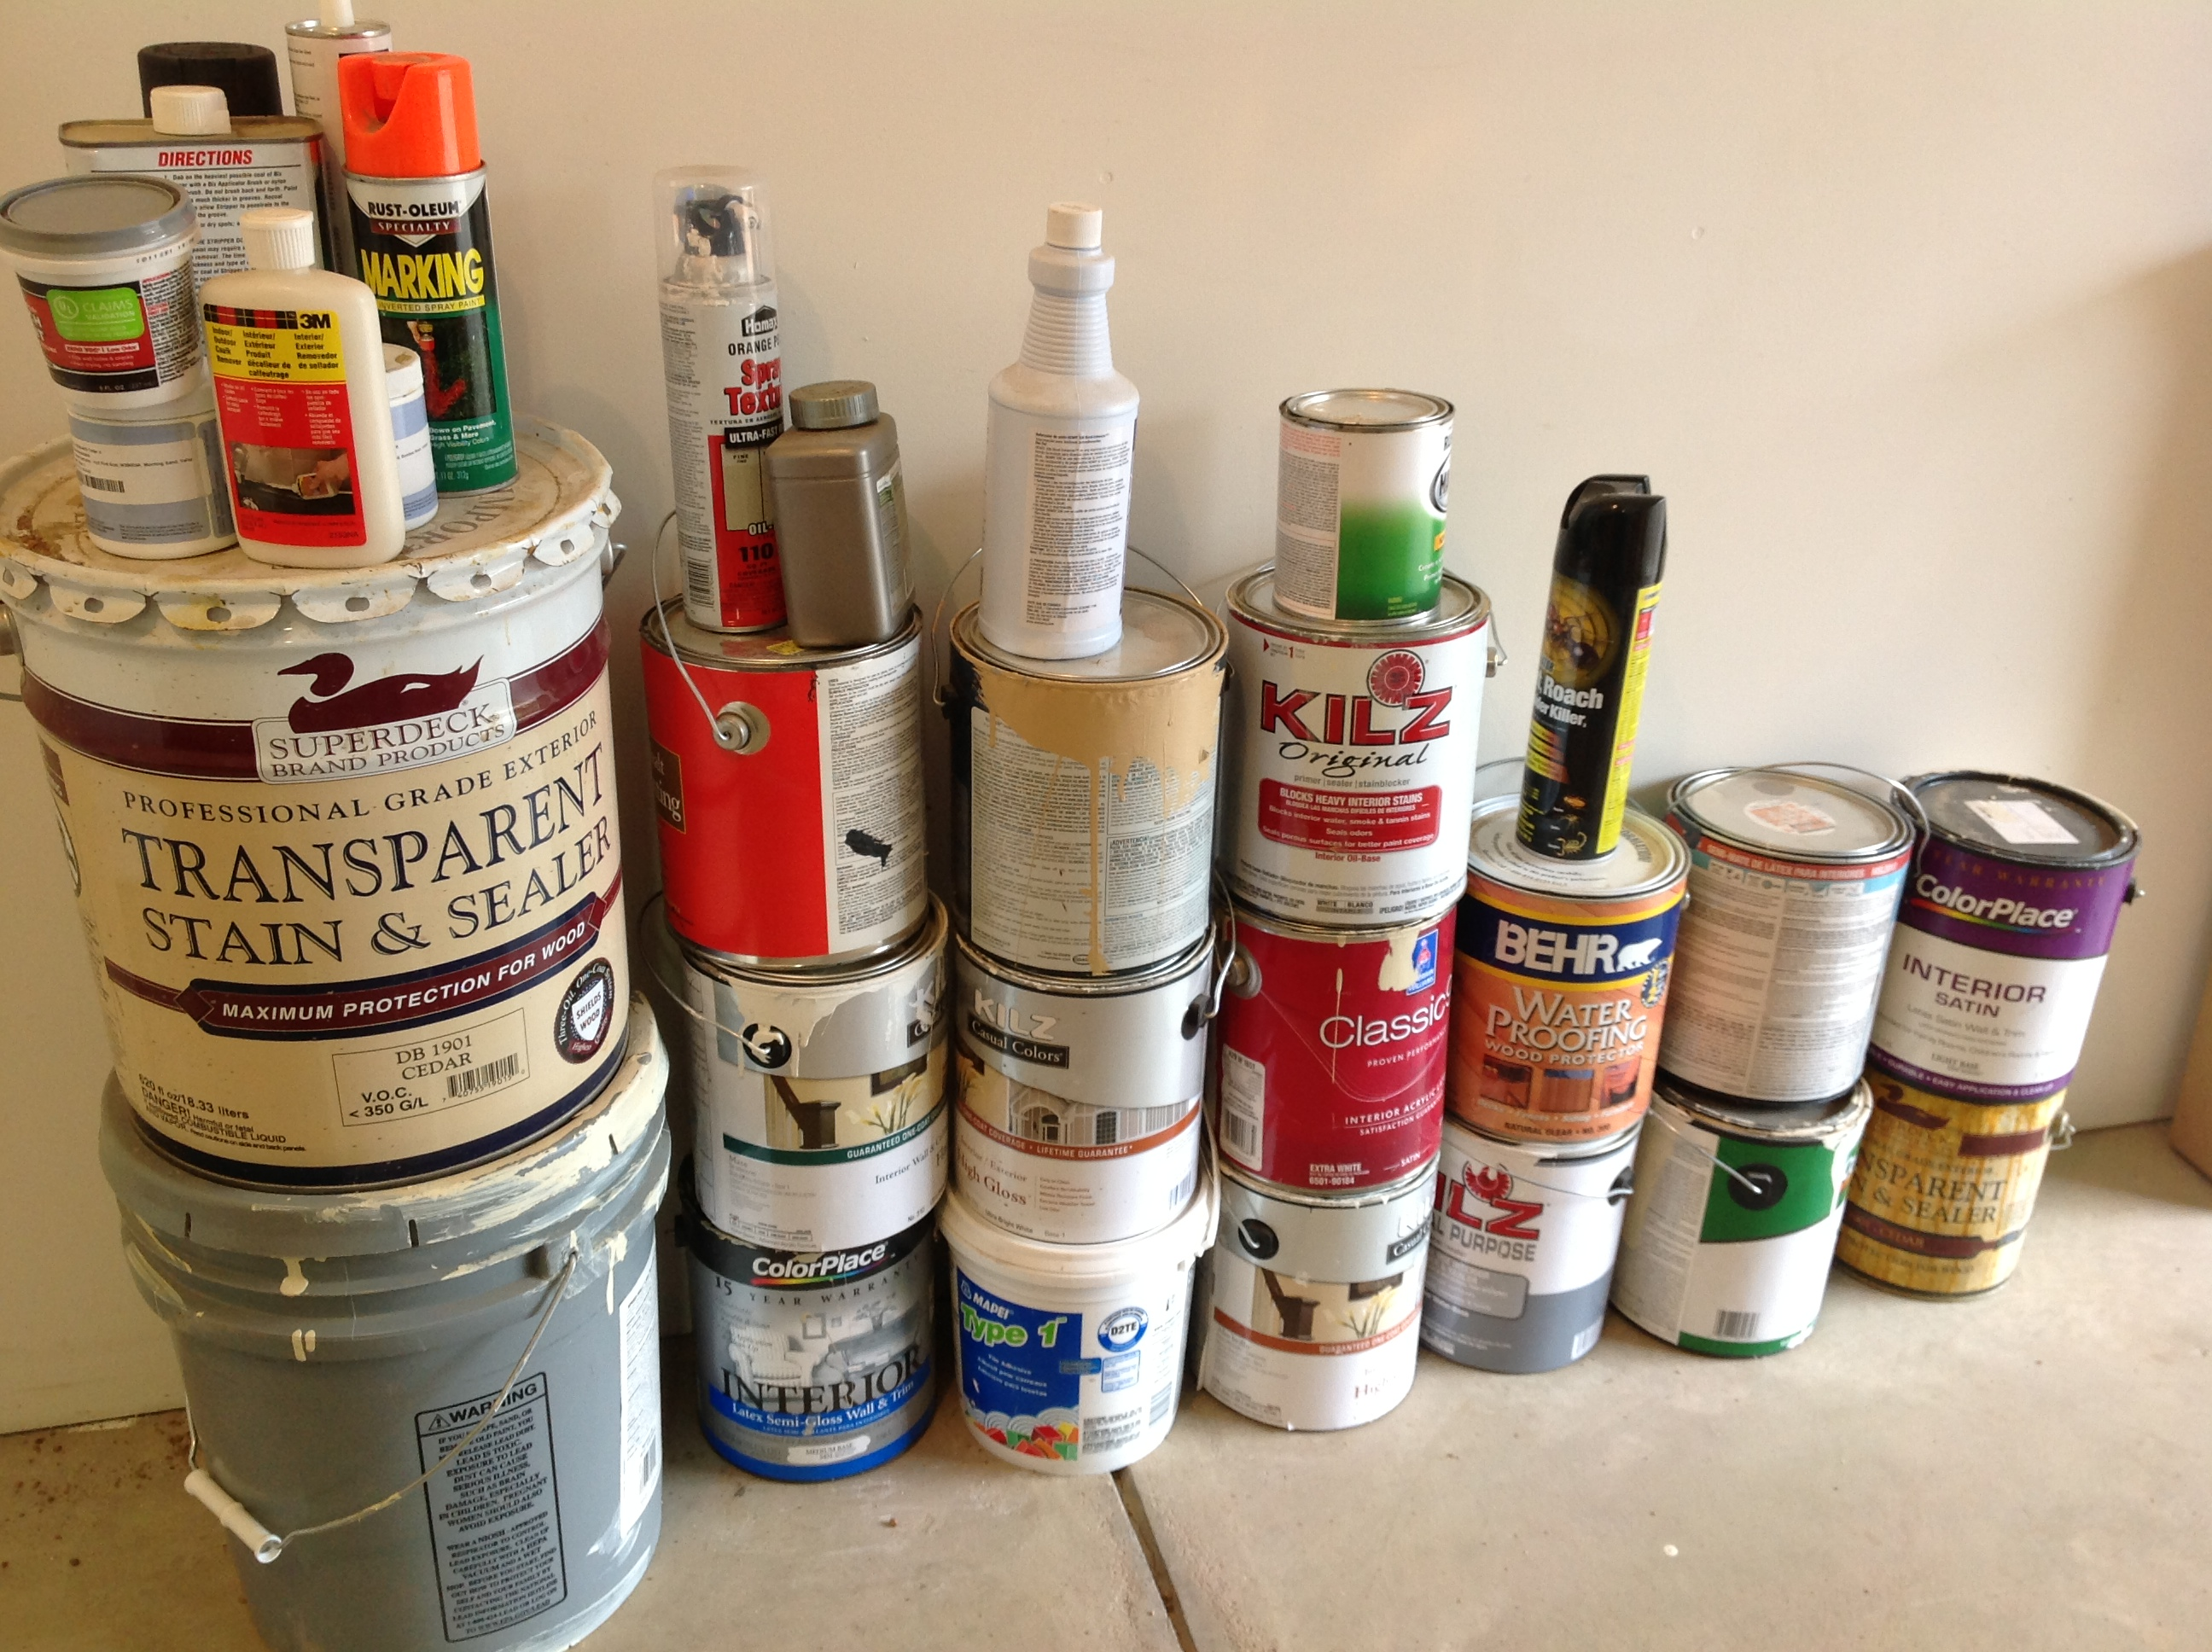 How To Throw Away Paint Cans